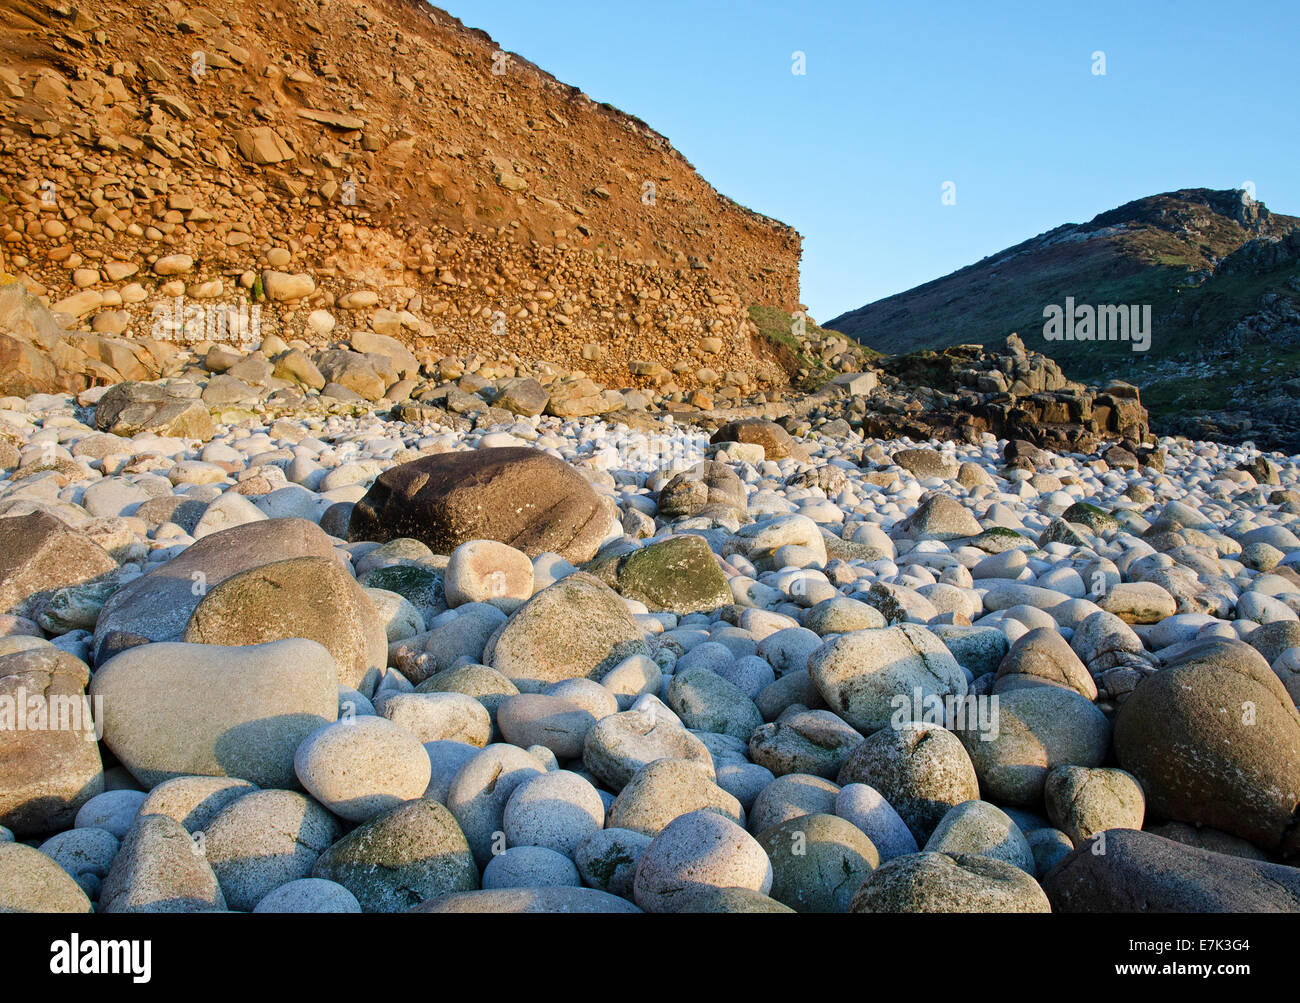 large round rocks found on the beach at Cot Cove near st.Just in Cornwall, UK - Stock Image